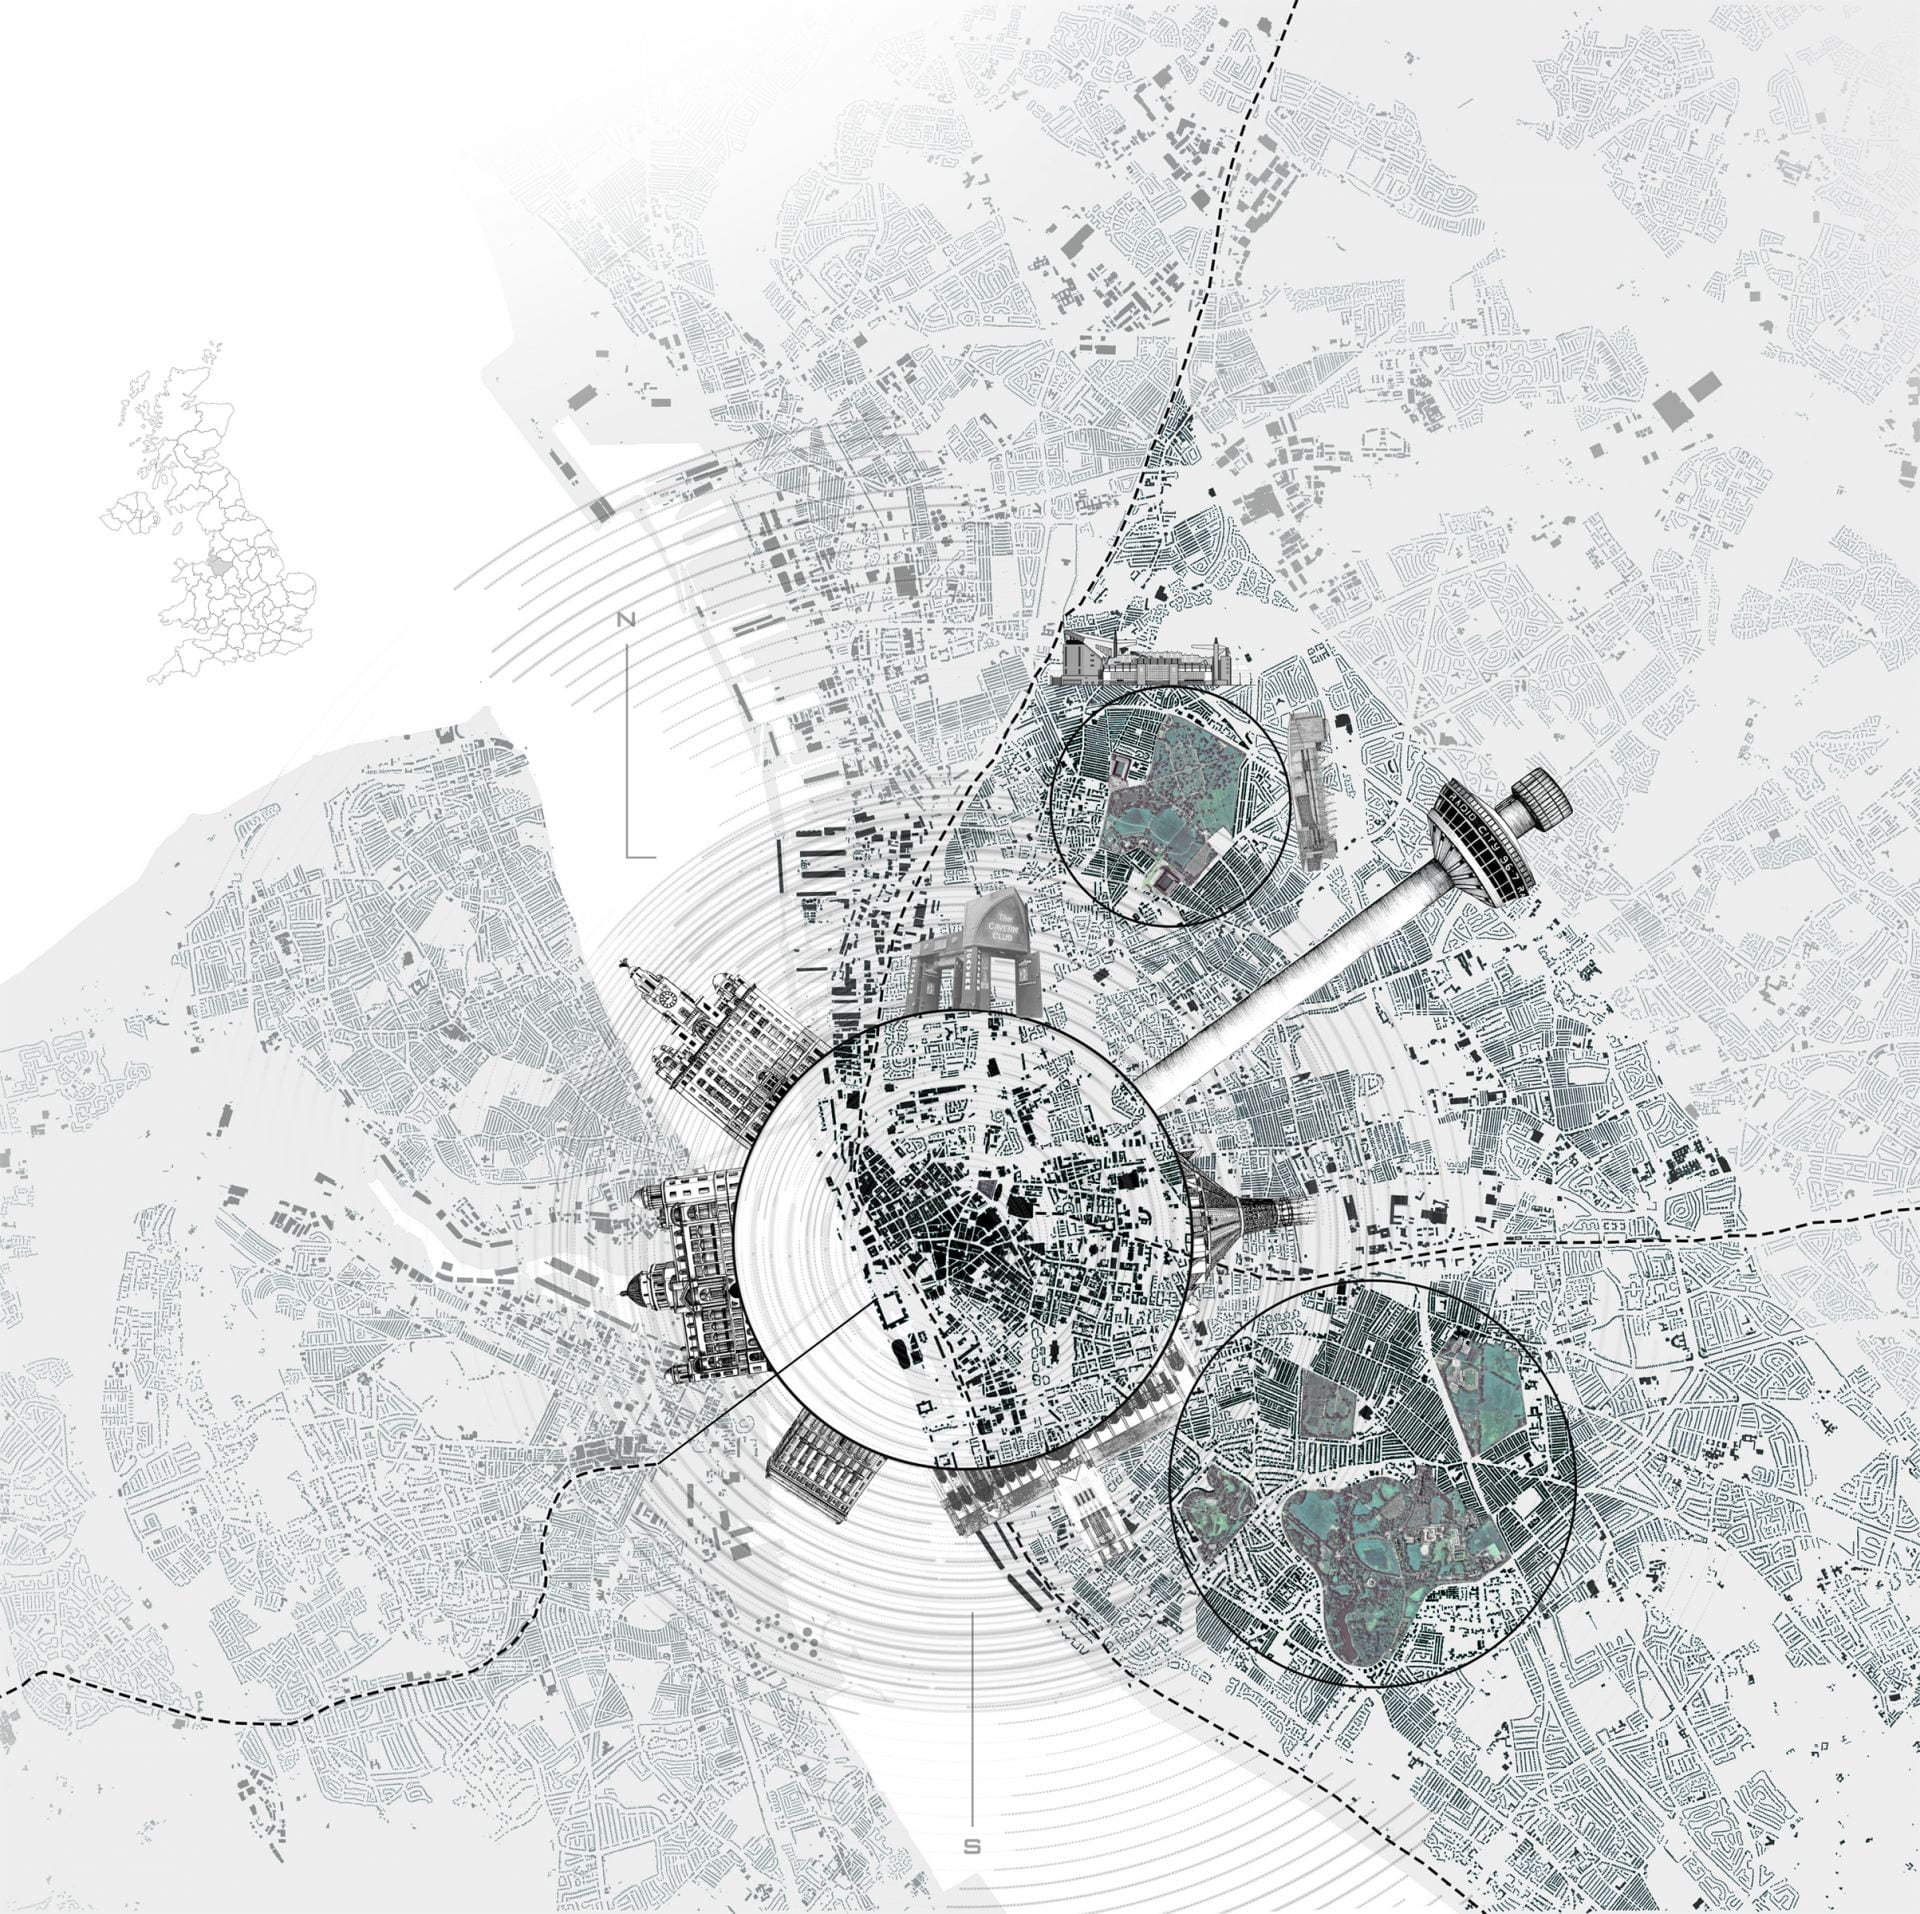 Graphic of map depicting green spaces and definitive architecture in Liverpool.